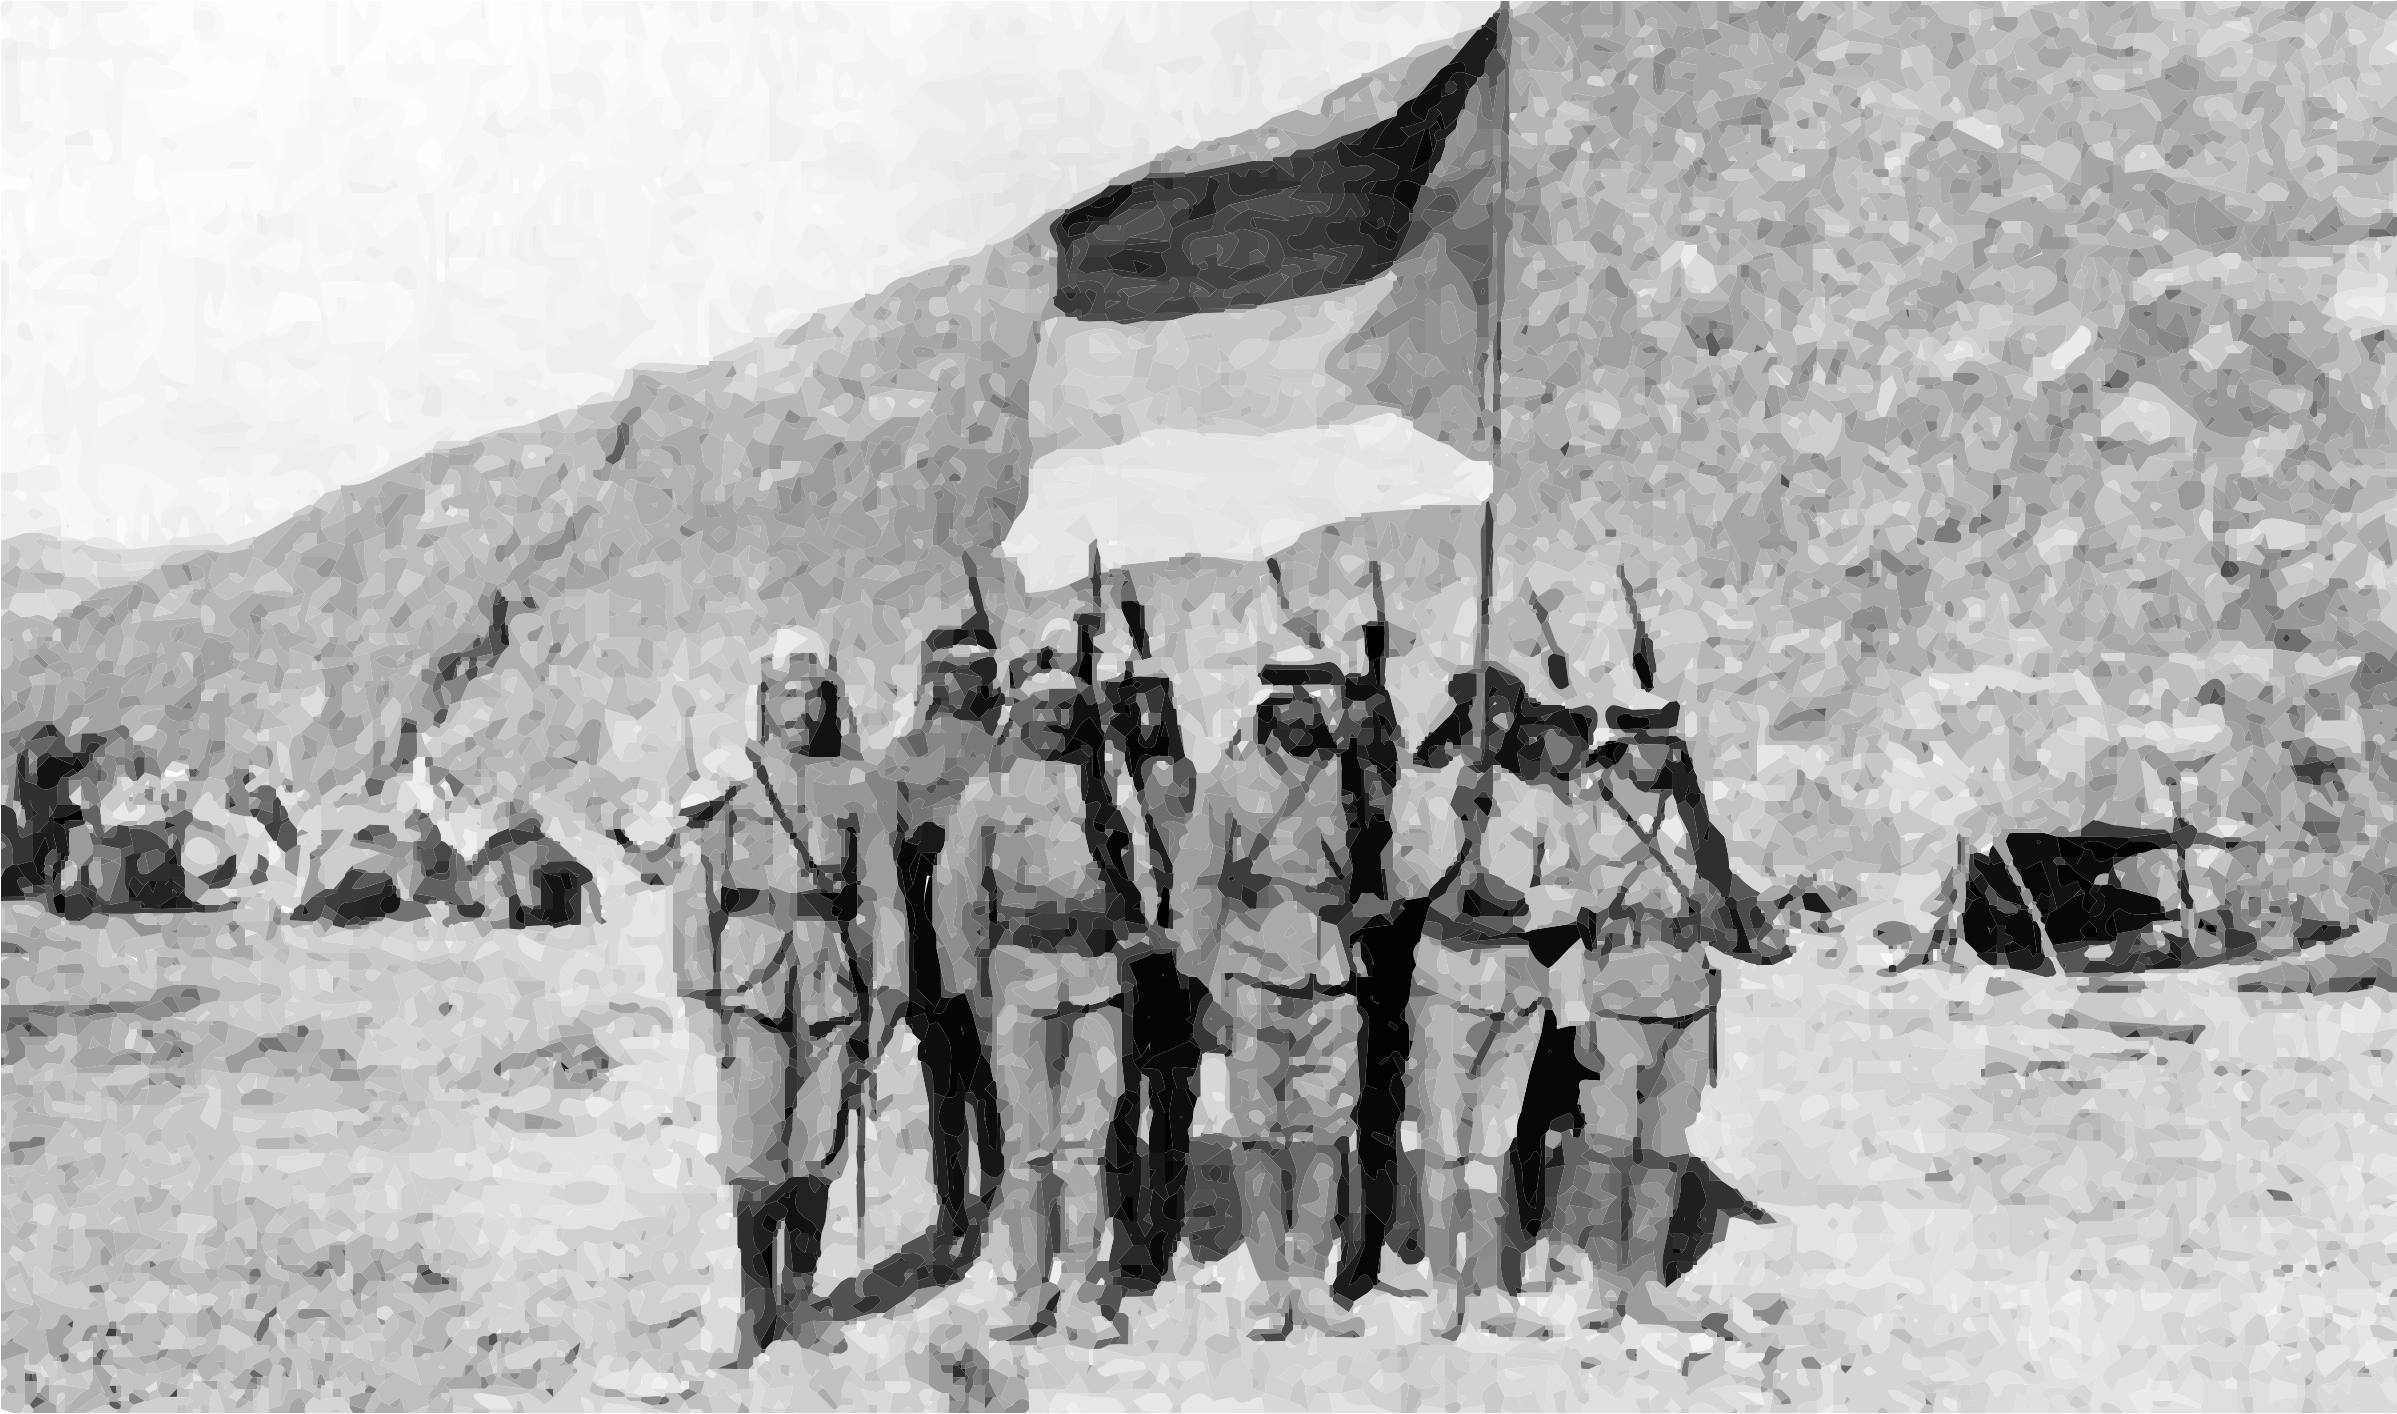 Arab Revolt 1916 by GDJ